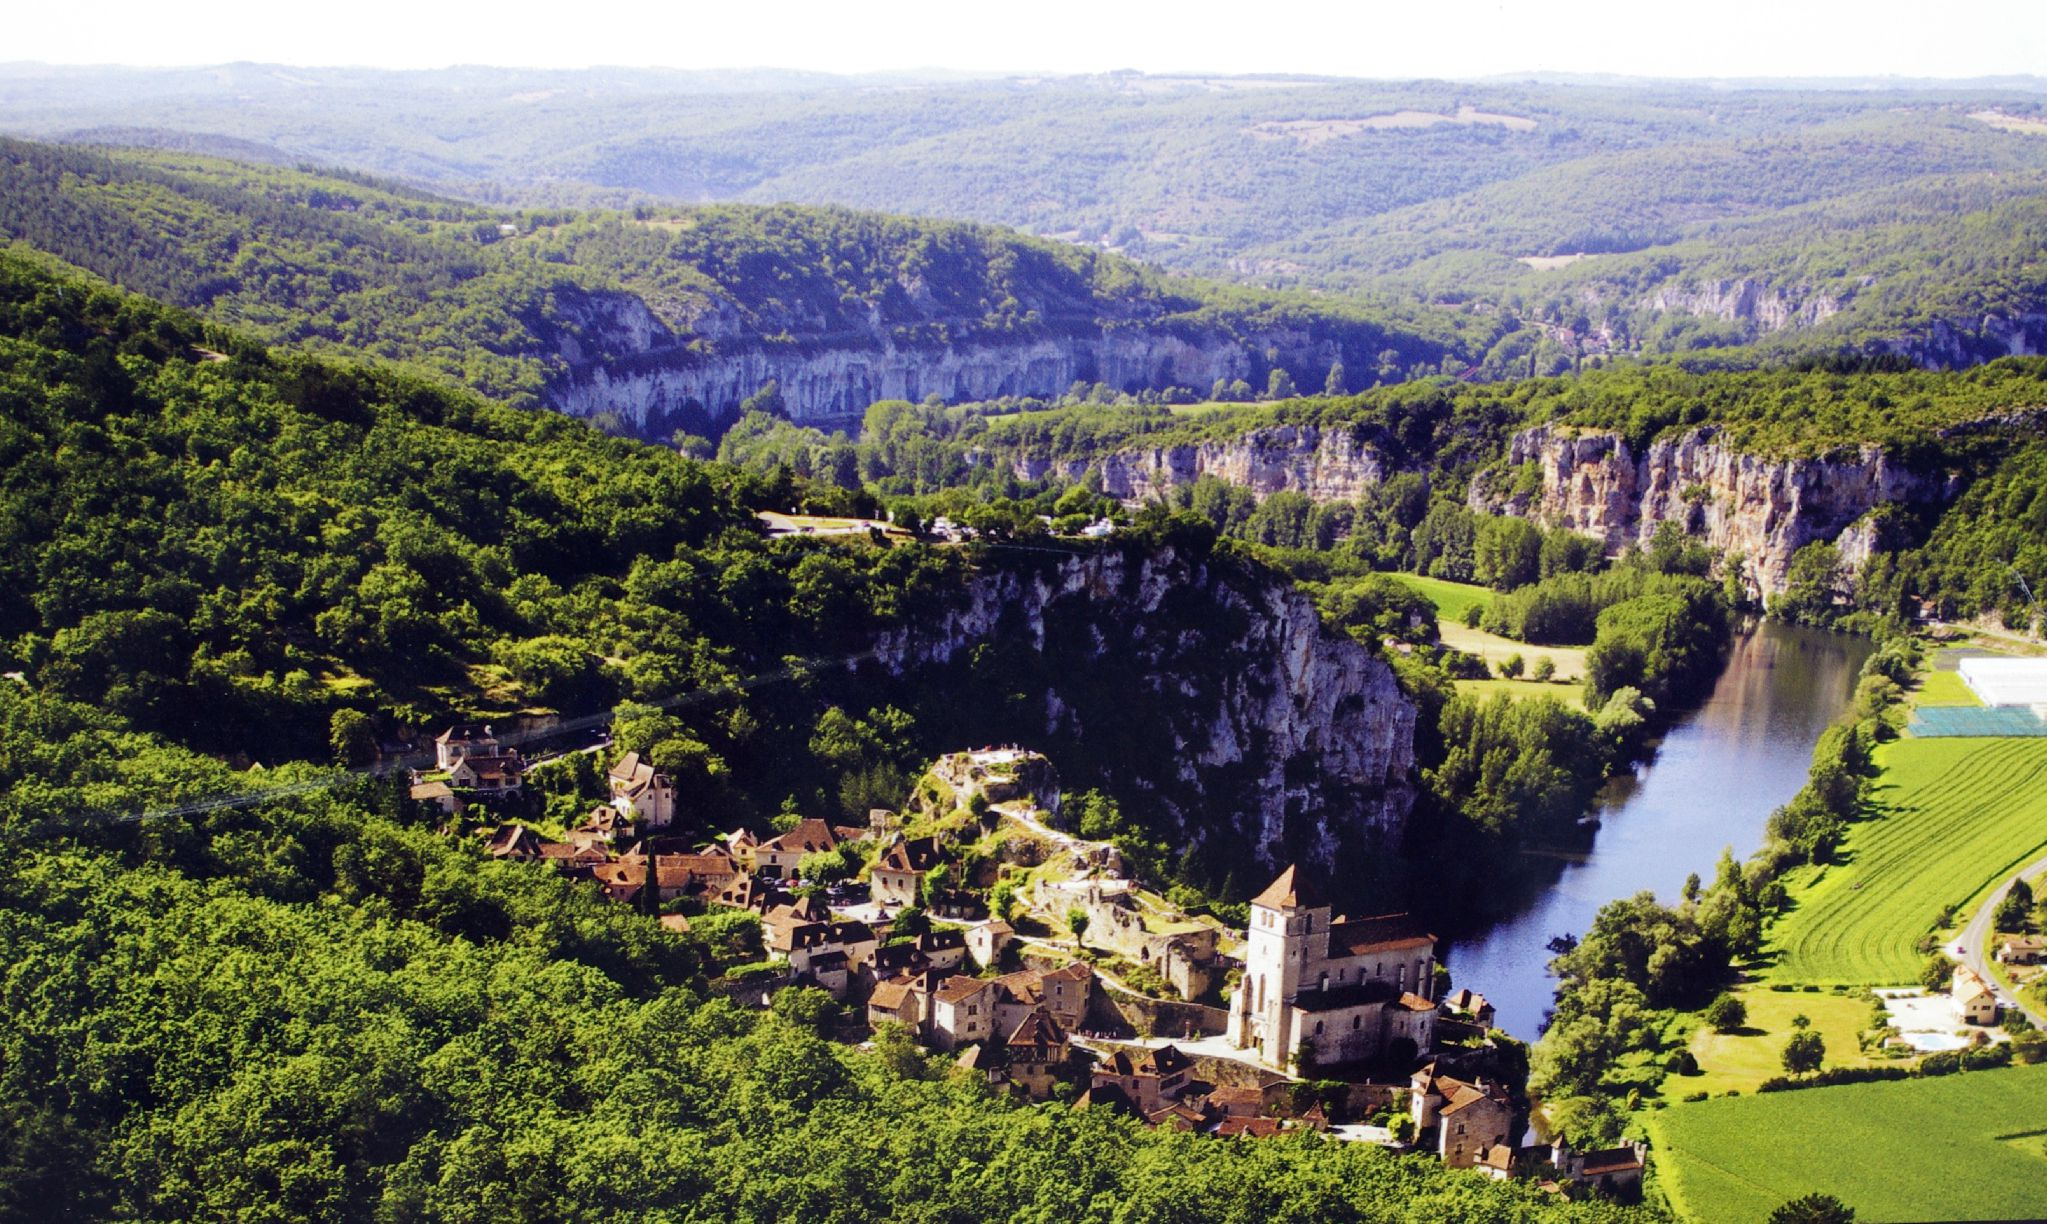 Vacances au pays basque cahors st jean pied de port - Places to stay in st jean pied de port ...